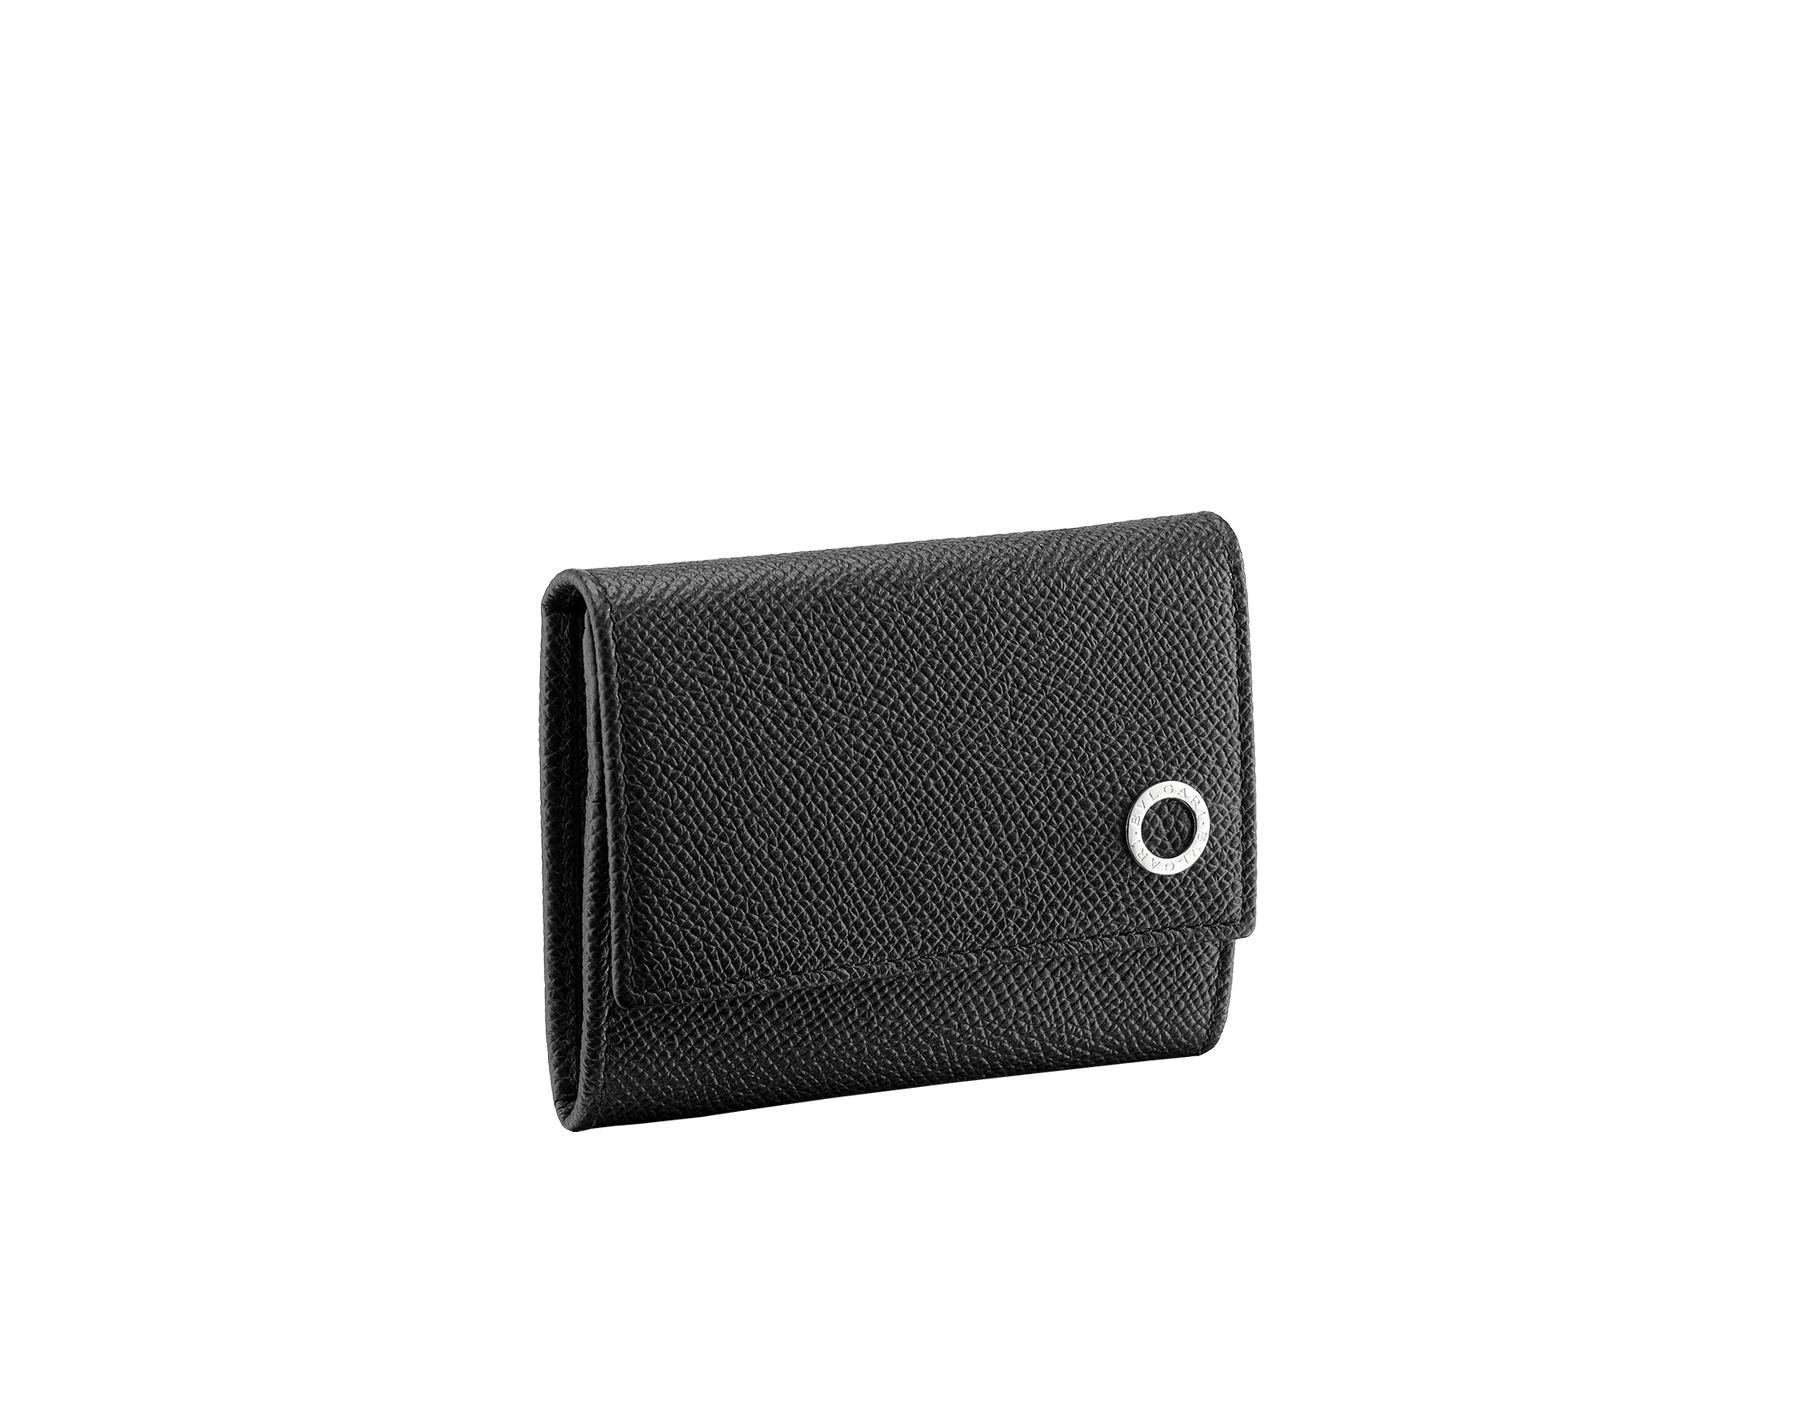 BVLGARI BVLGARI coins and credit card holder in black and ruby red grain calf leather and black nappa lining. Iconic logo décor in palladium plated brass. 288293 image 1